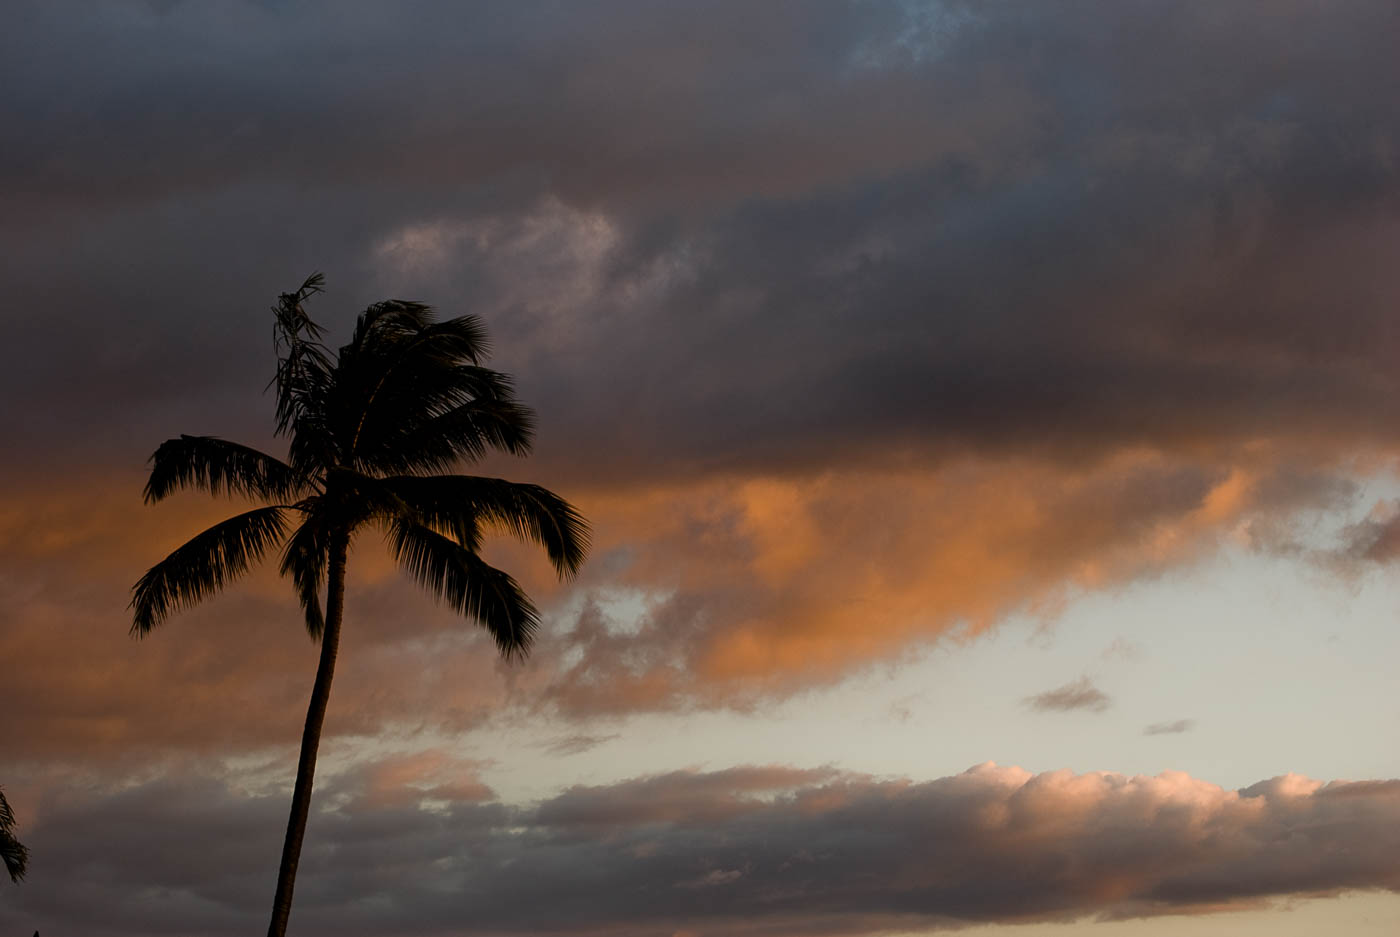 Sunset Palm - Kuleana Resort, Maui | Pono Images